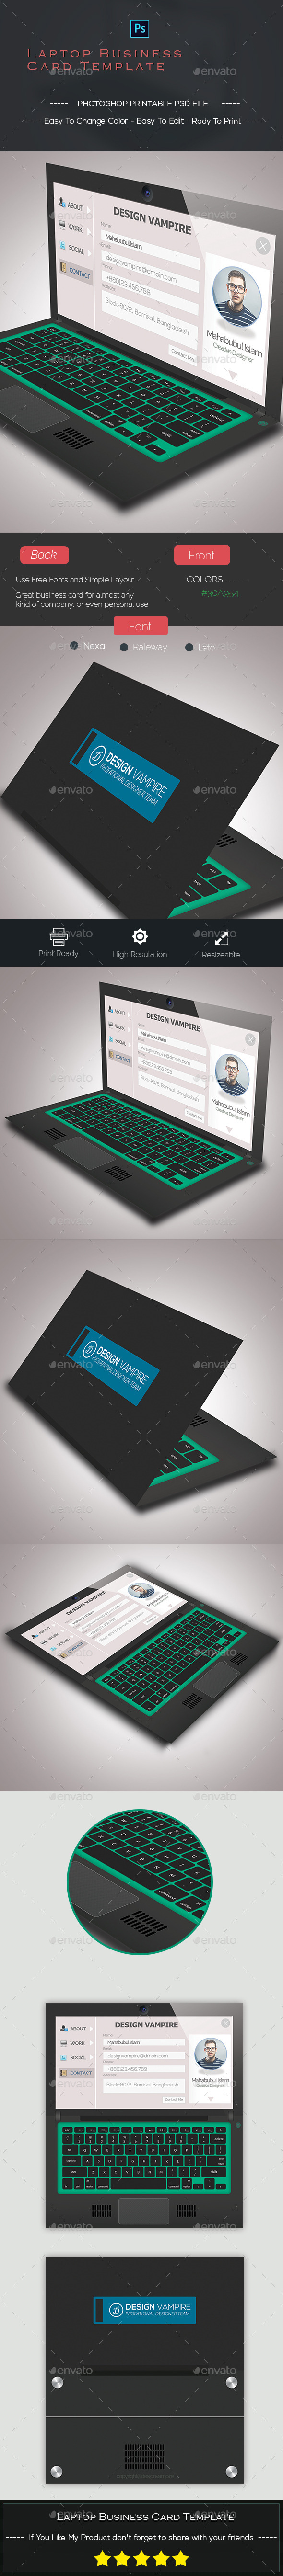 Laptop Business Card Template  - Creative Business Cards